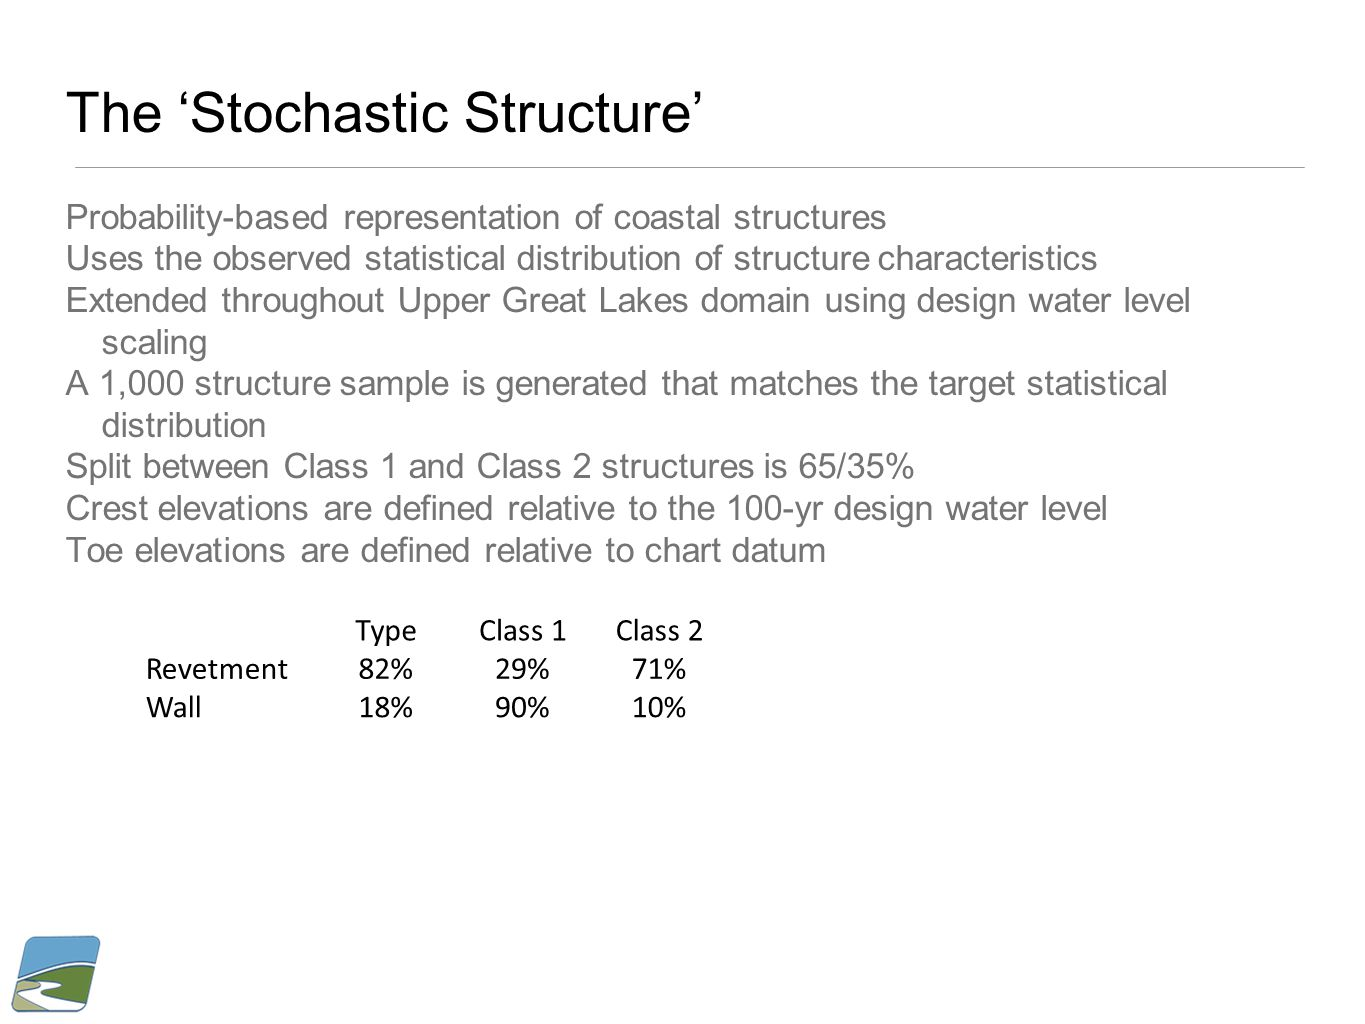 The 'Stochastic Structure' Probability-based representation of coastal structures Uses the observed statistical distribution of structure characteristics Extended throughout Upper Great Lakes domain using design water level scaling A 1,000 structure sample is generated that matches the target statistical distribution Split between Class 1 and Class 2 structures is 65/35% Crest elevations are defined relative to the 100-yr design water level Toe elevations are defined relative to chart datum TypeClass 1Class 2 Revetment82%29%71% Wall18%90%10%